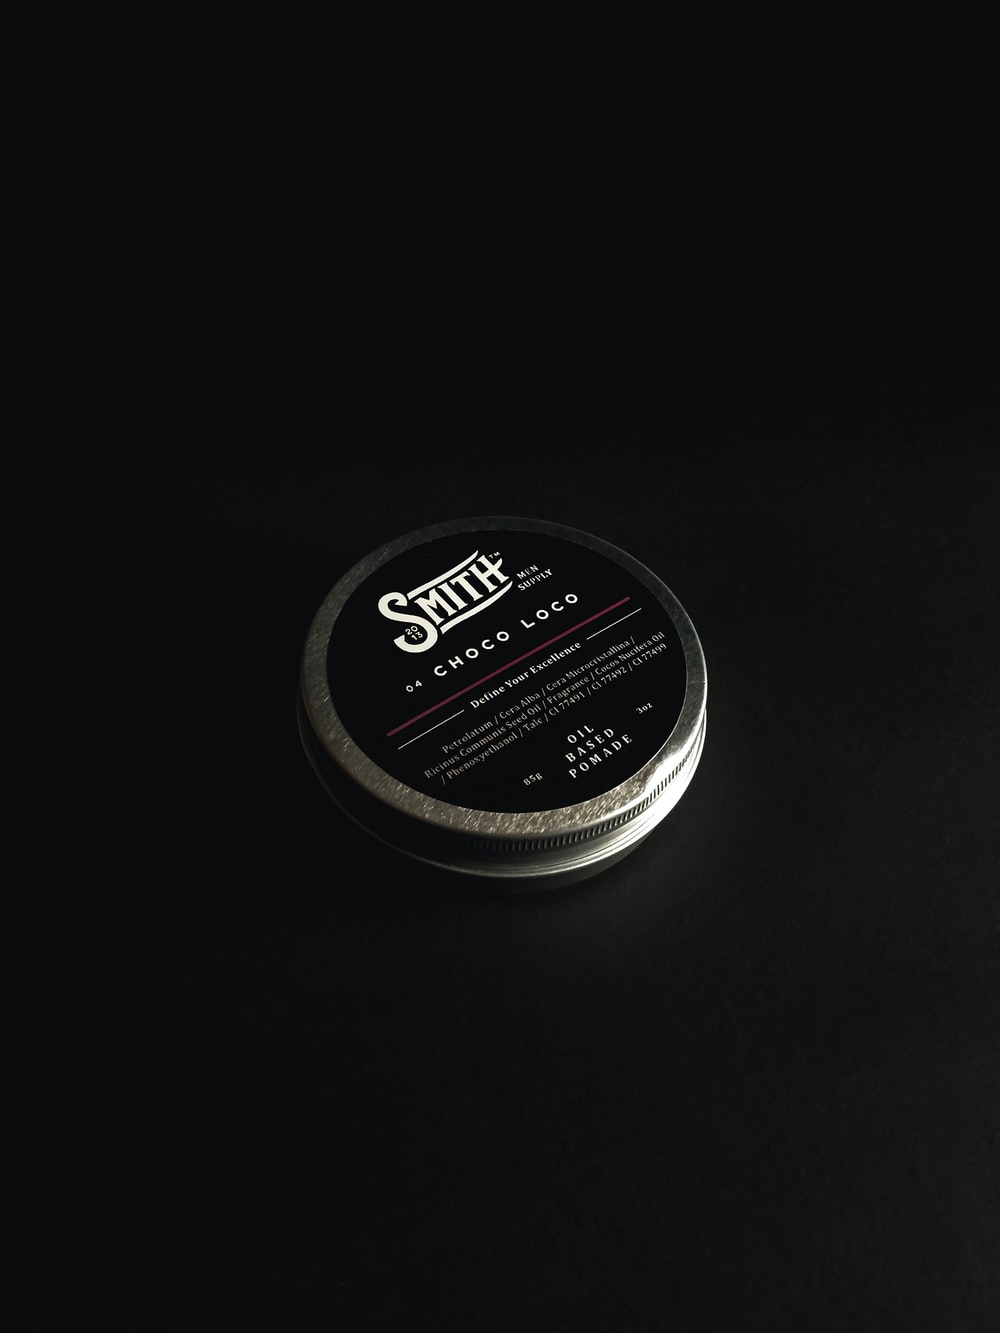 black and silver round container